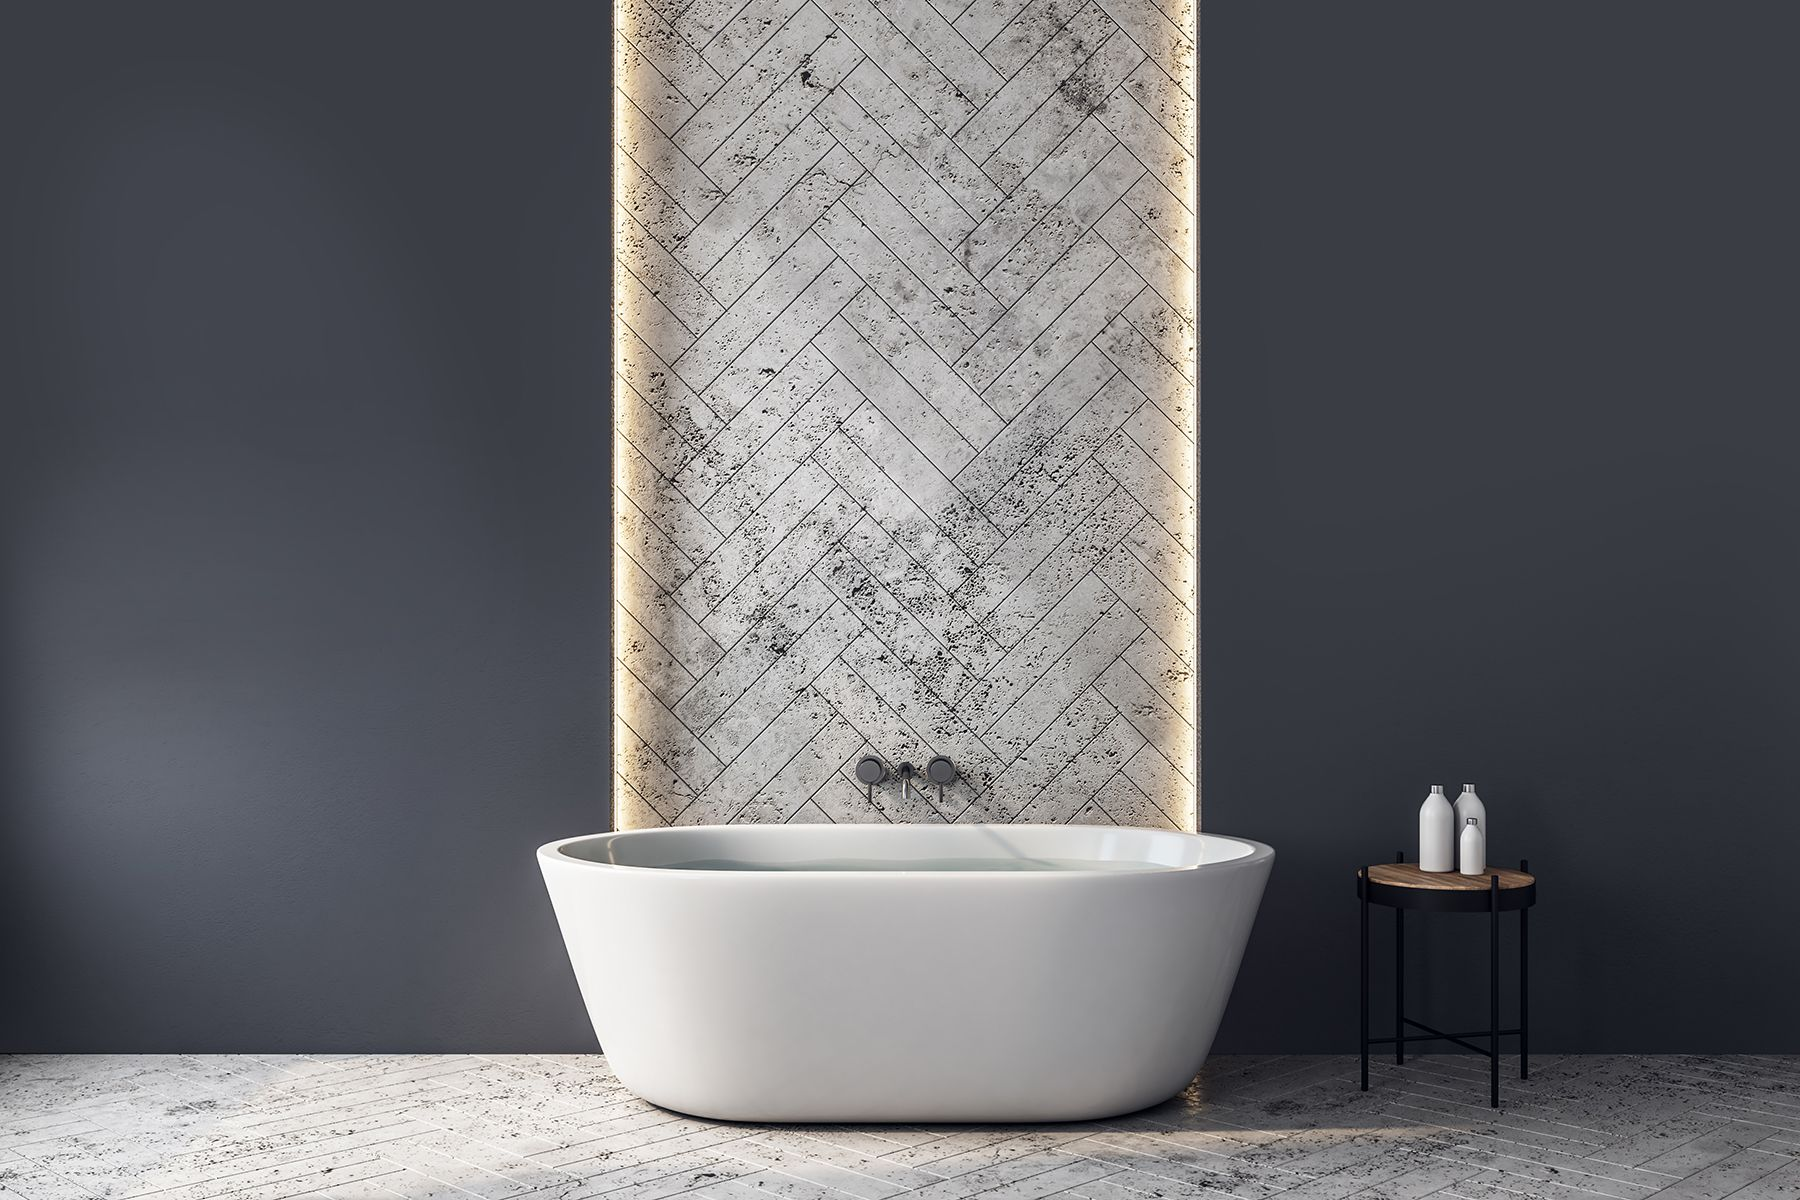 We Love Deep Tones Like Magnet C2 967 In The Bathroom When Paired With Dramatic Architectural Elements Bathroom Design Walk In Shower Designs Shower Design